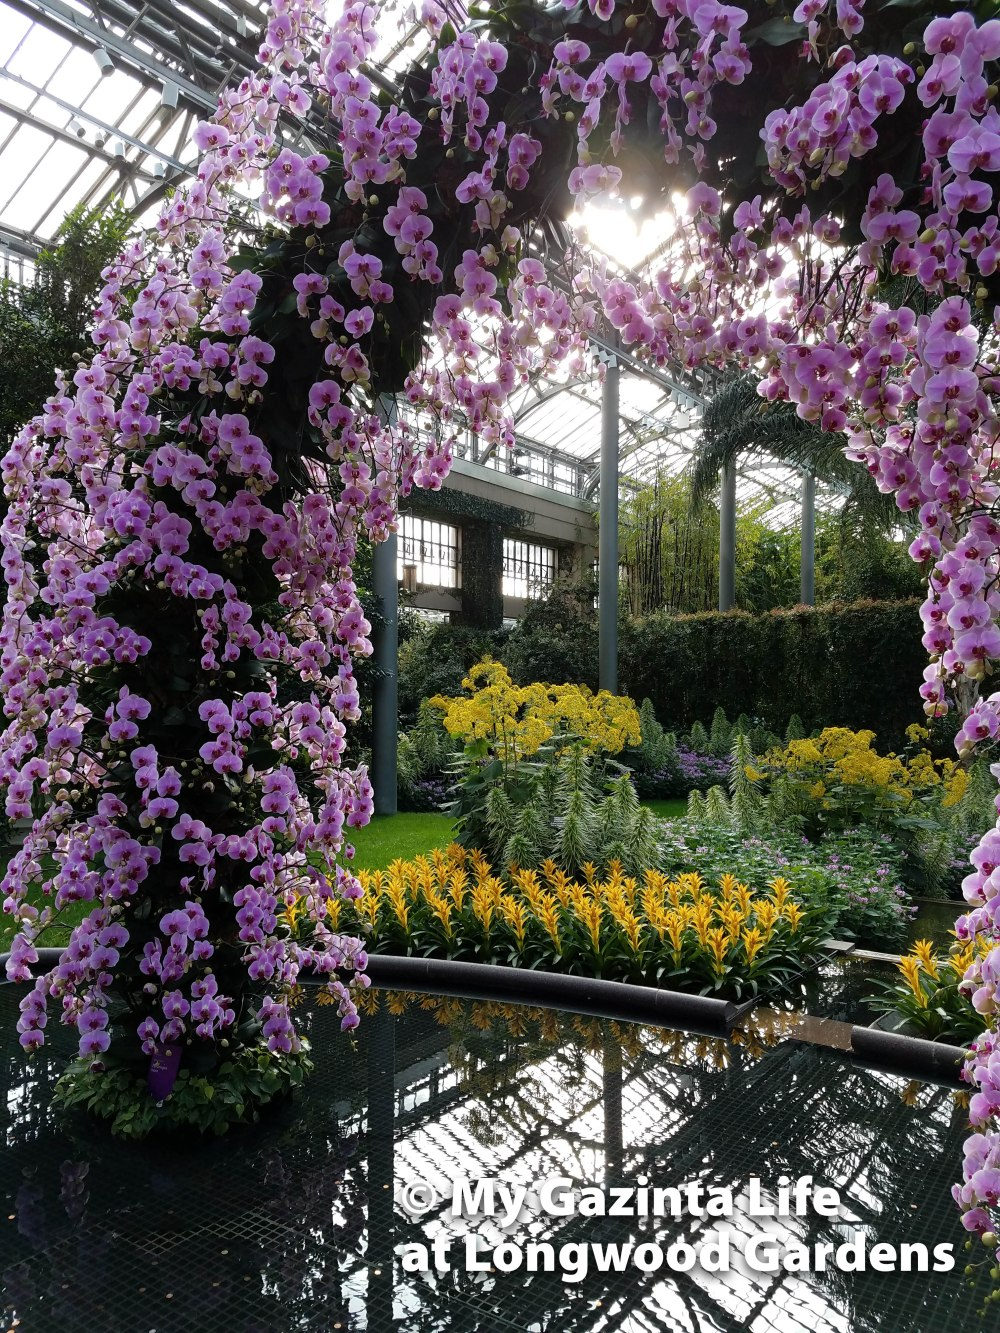 Gazinta life hits the road to longwood gardens the orchid for Longwood gardens address